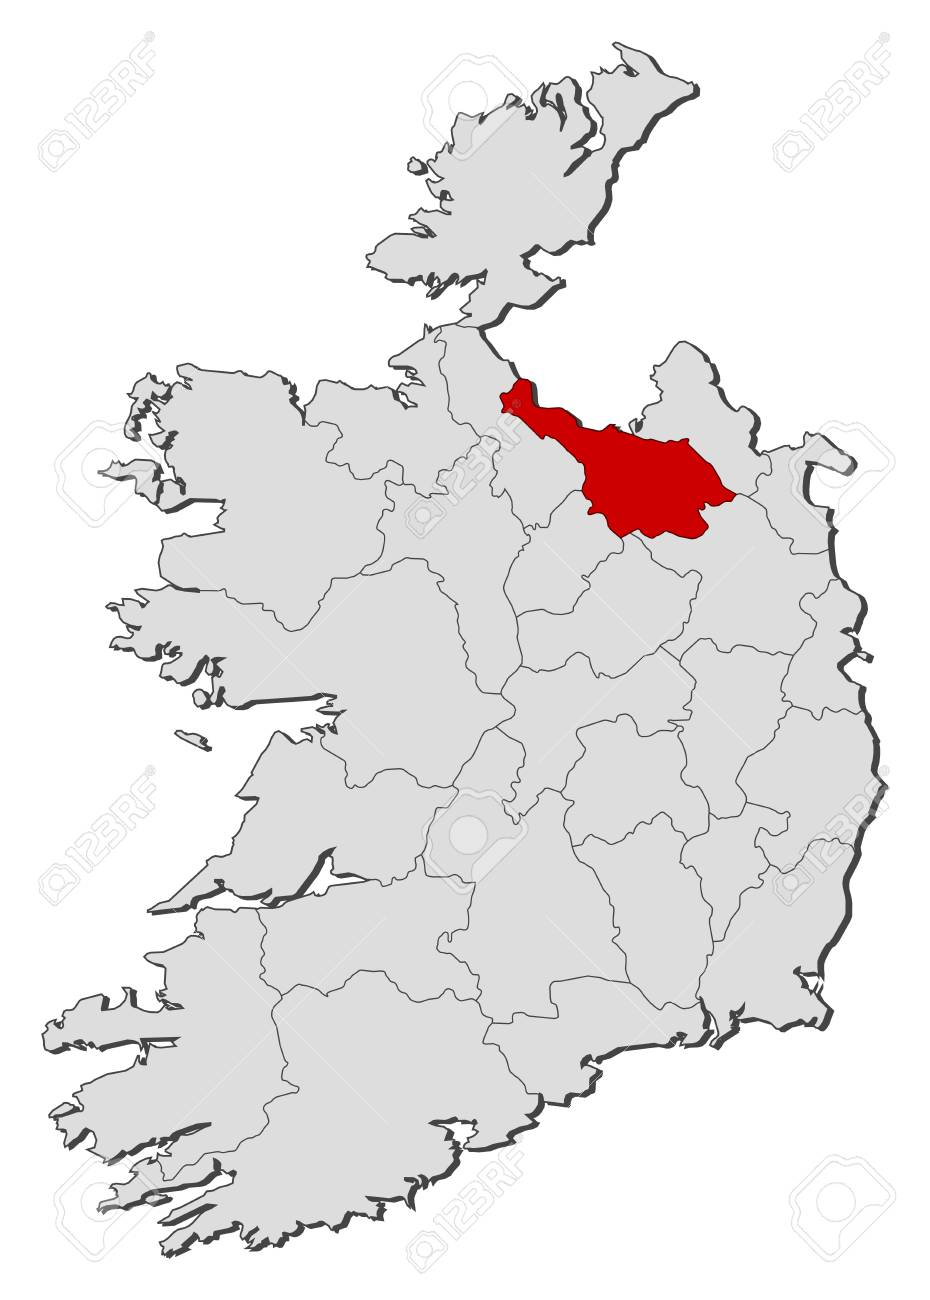 Map Of Ireland Cavan.Map Of Ireland With The Provinces Cavan Is Highlighted